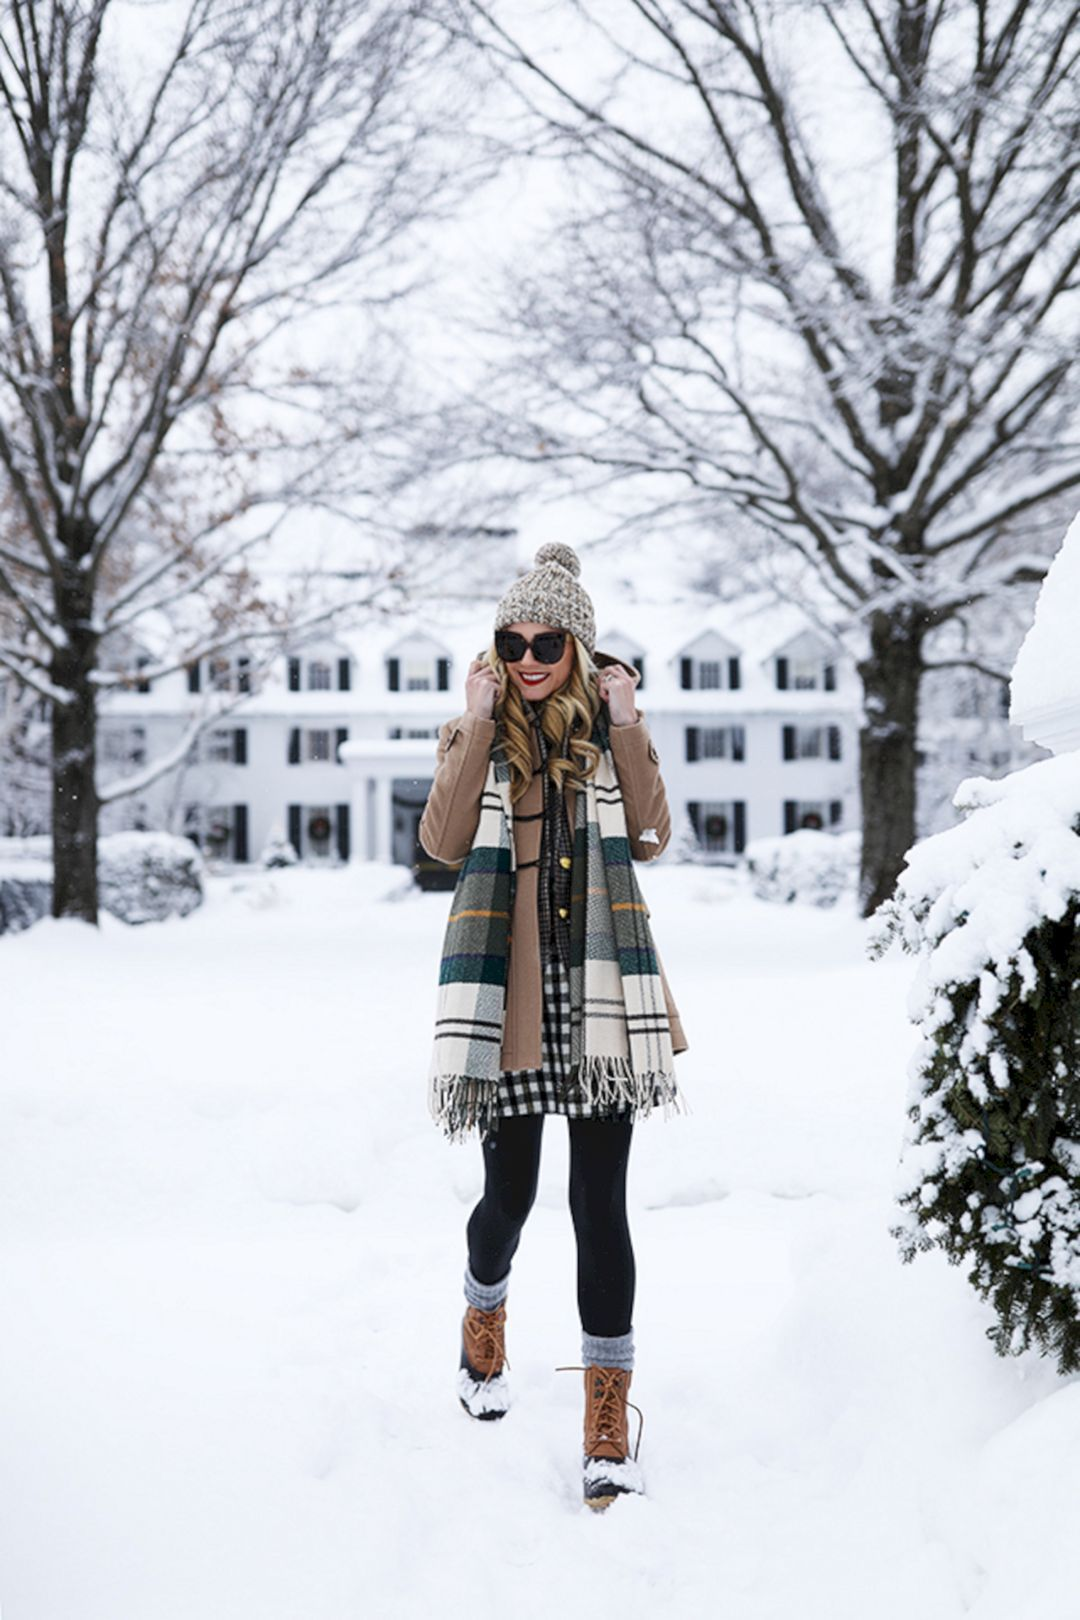 35 Most Popular Snow Outfits Style Ideas For Pretty Women